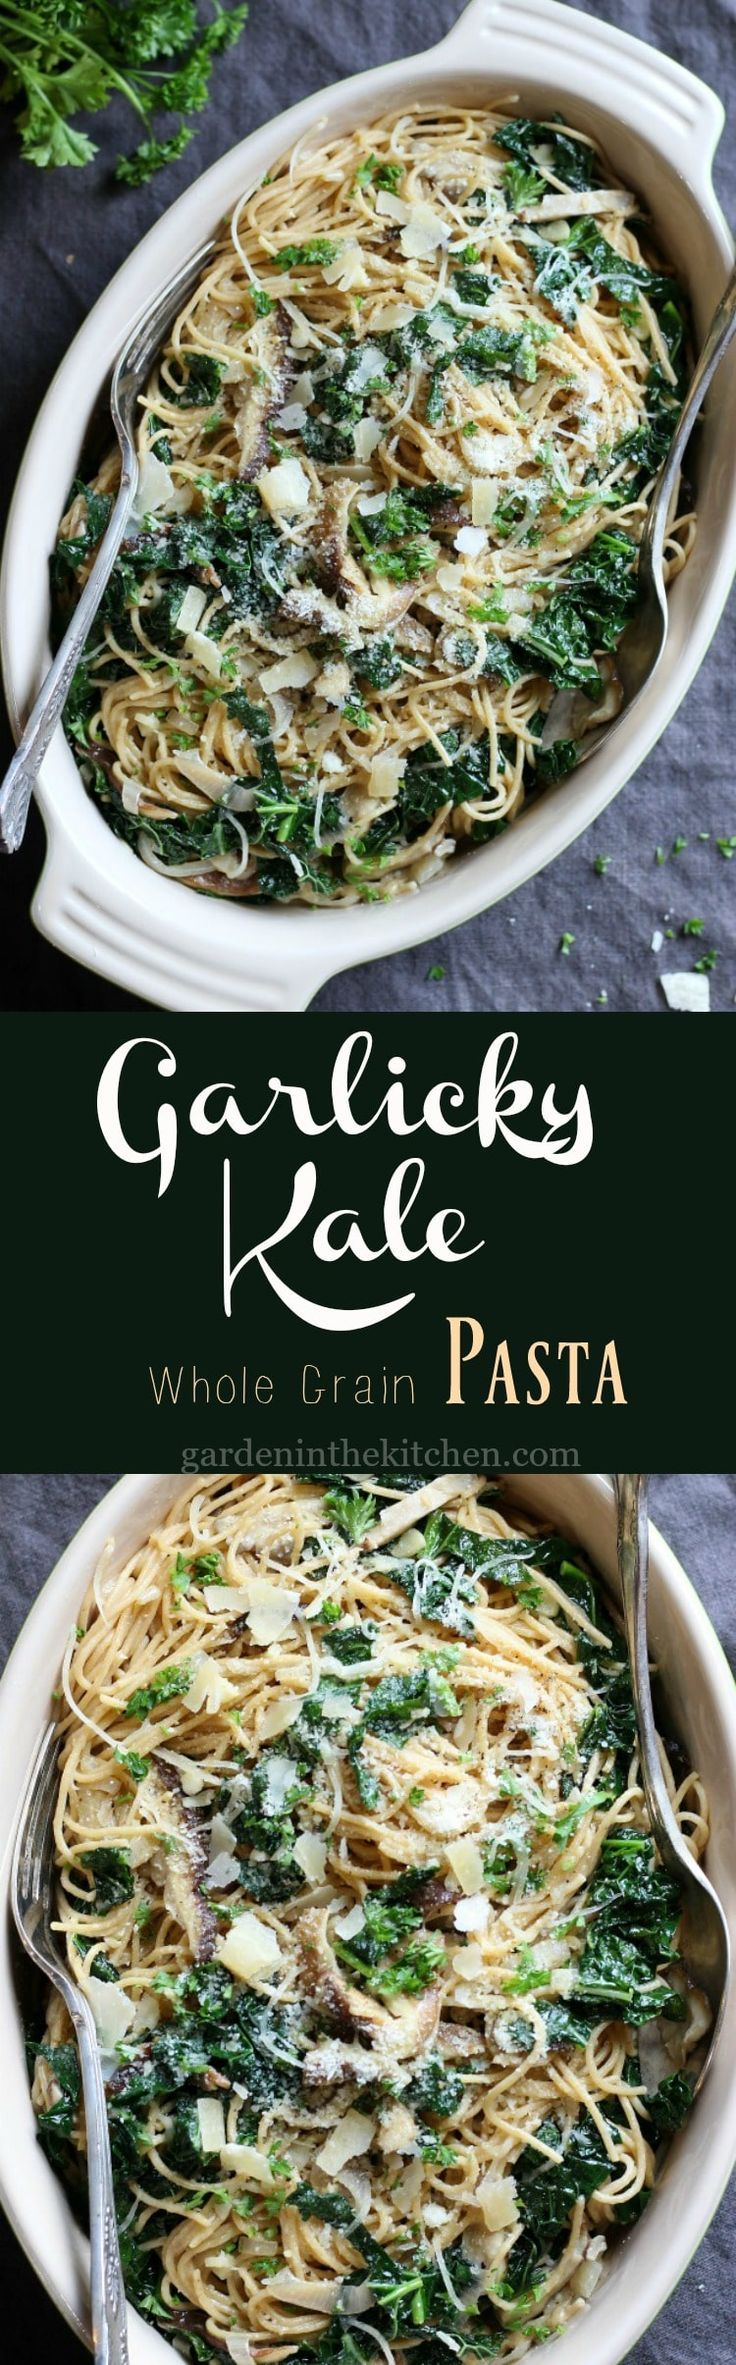 Garlicky Kale Pasta. For vegan use chicken free chicken broth and non dairy parmesan shreds